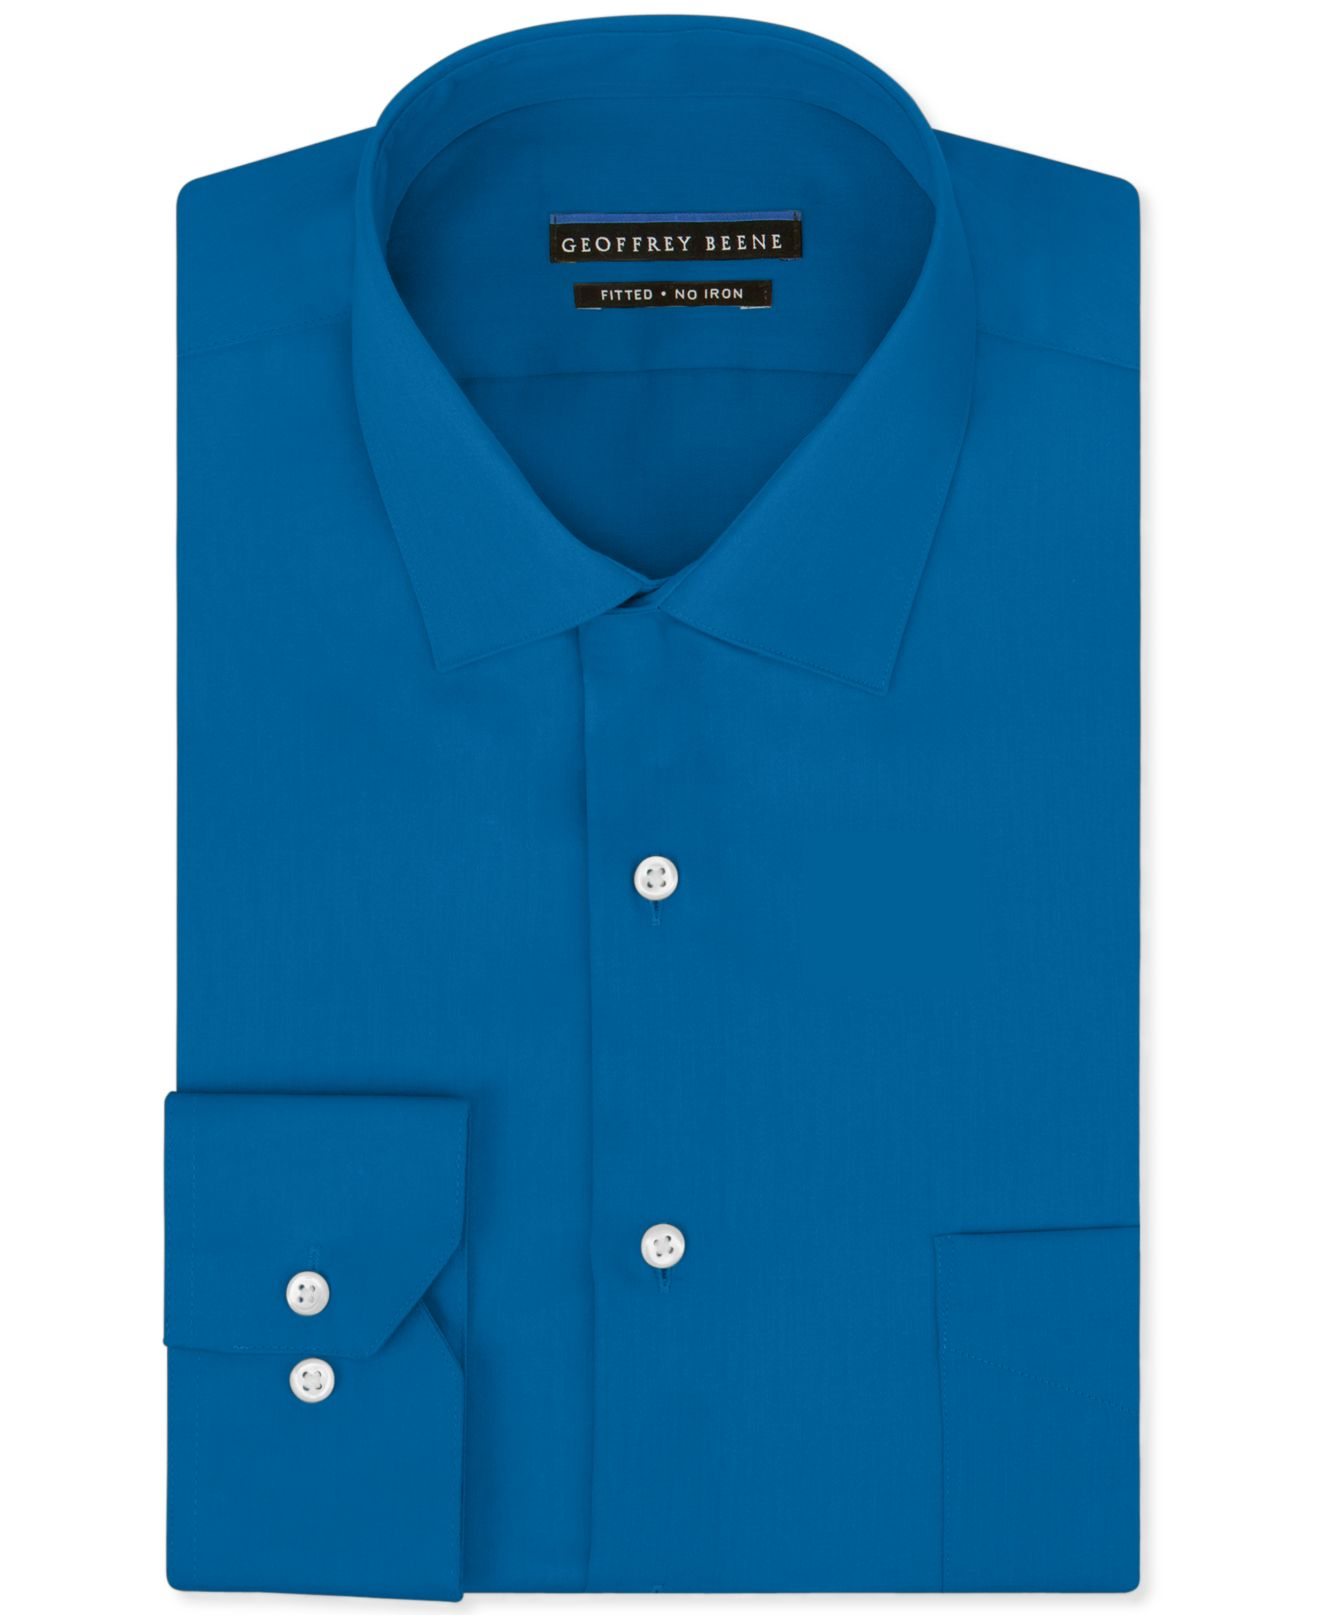 Geoffrey beene noniron sateen solid dress shirt in blue for Dress shirts for big and tall